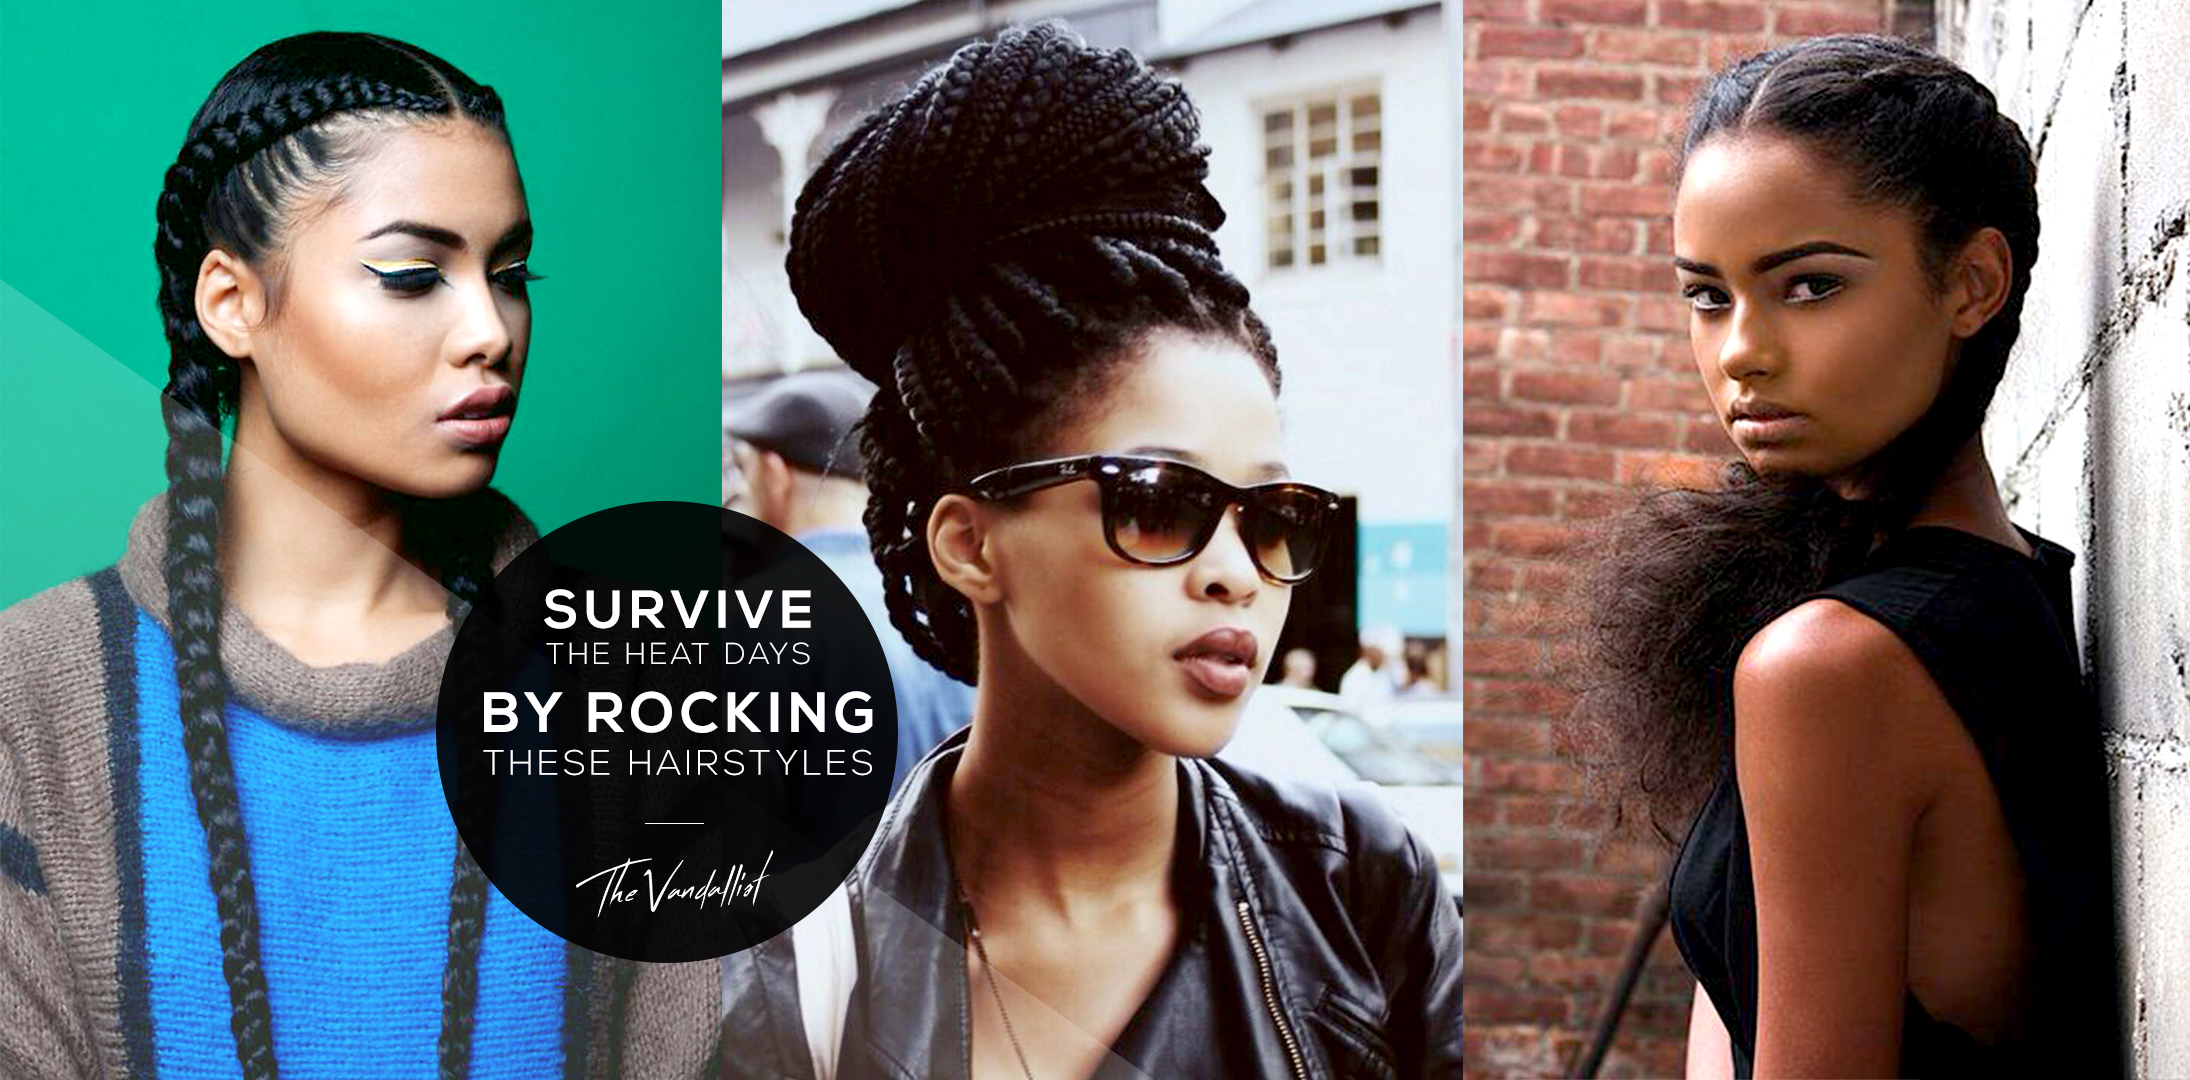 Survive the heat days by rocking these hairstyles- the vandallist